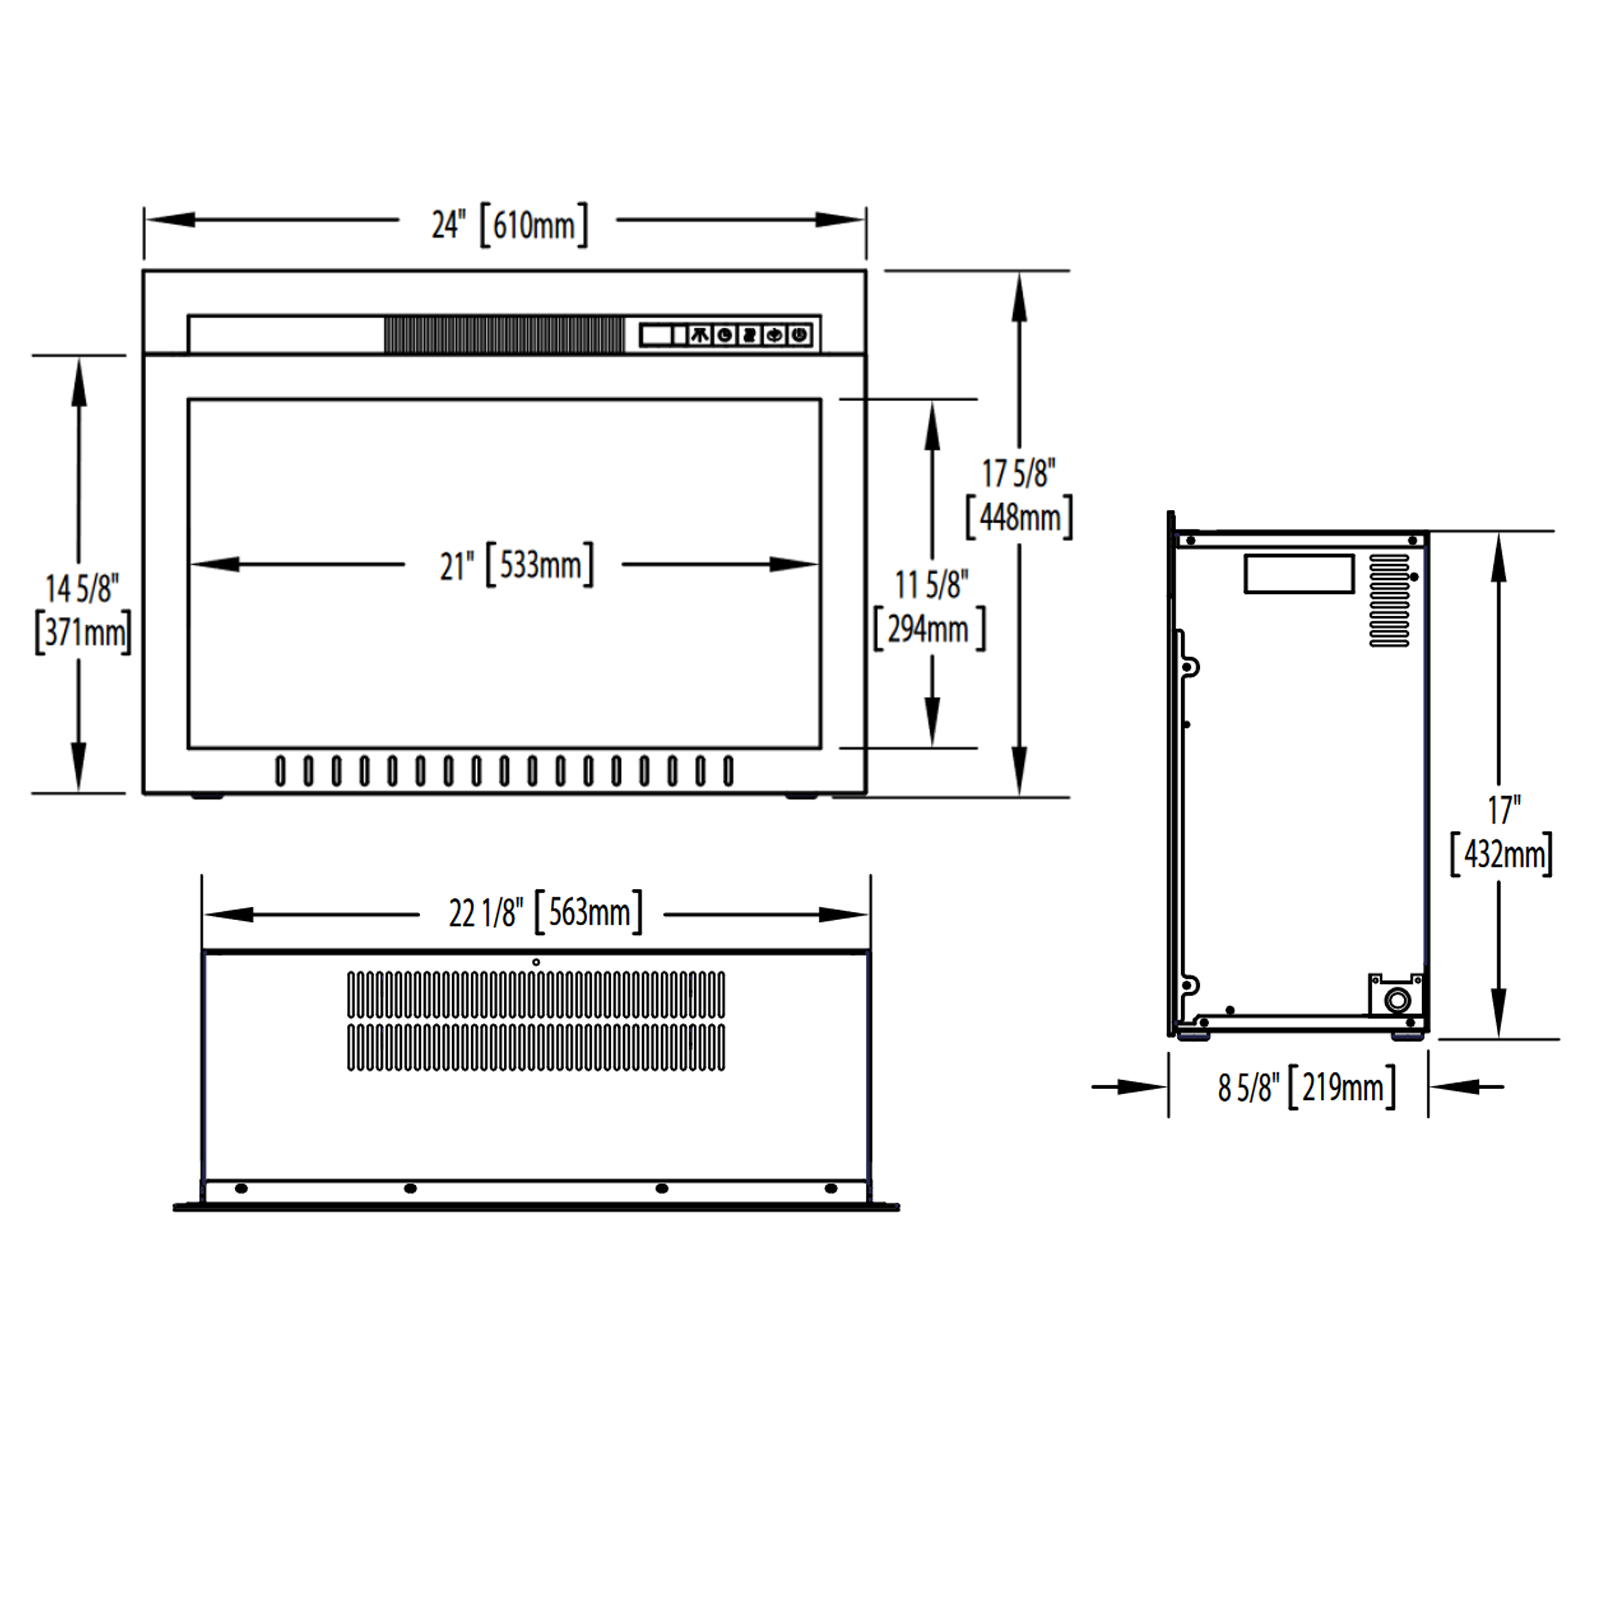 NEFB24 Technical Drawing 1